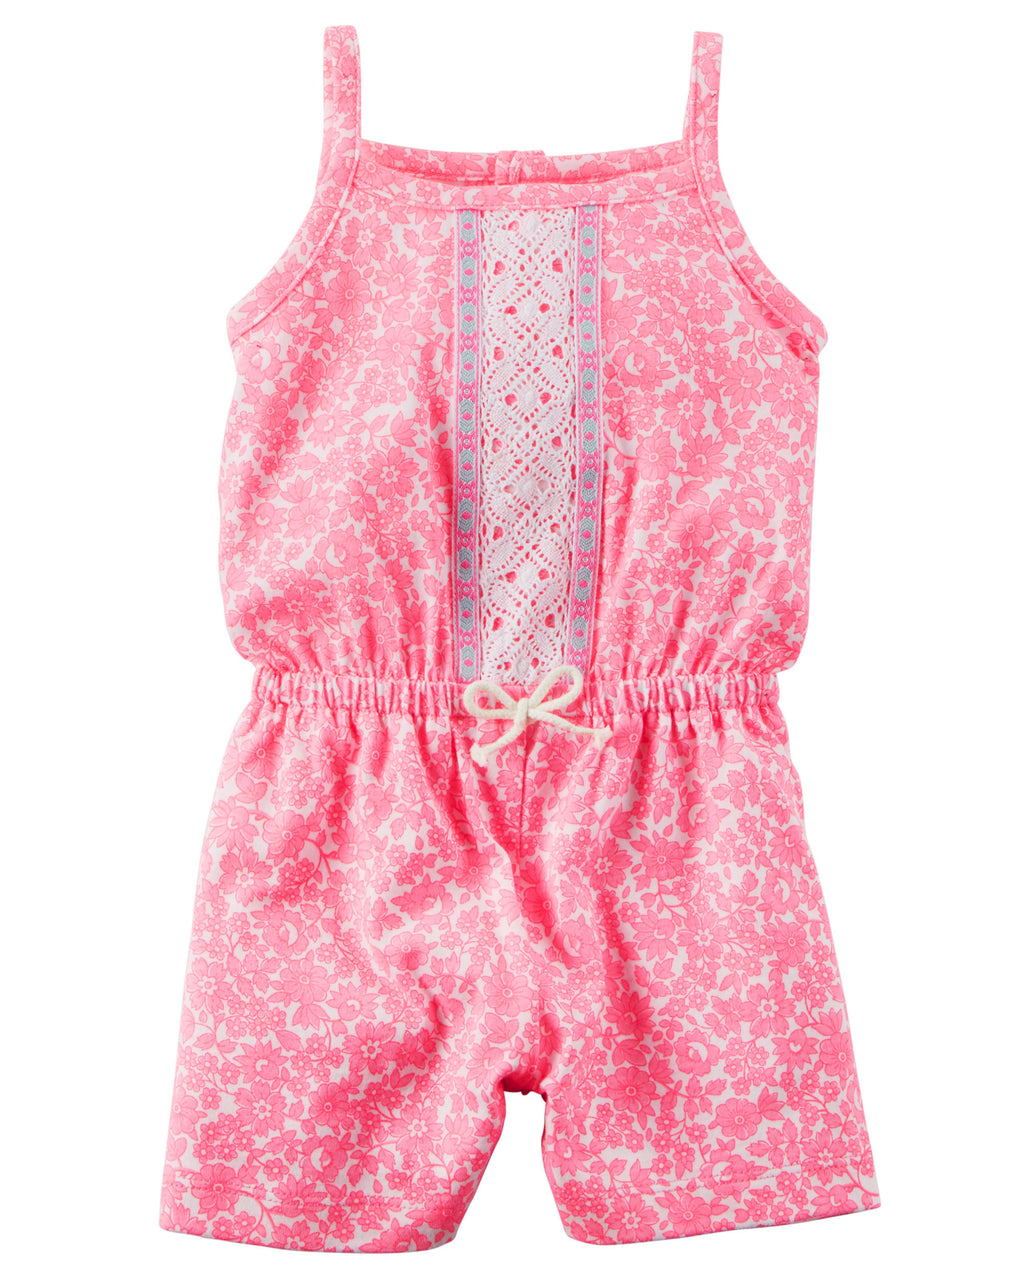 Enterito CARTERS Floral Embroidered Romper